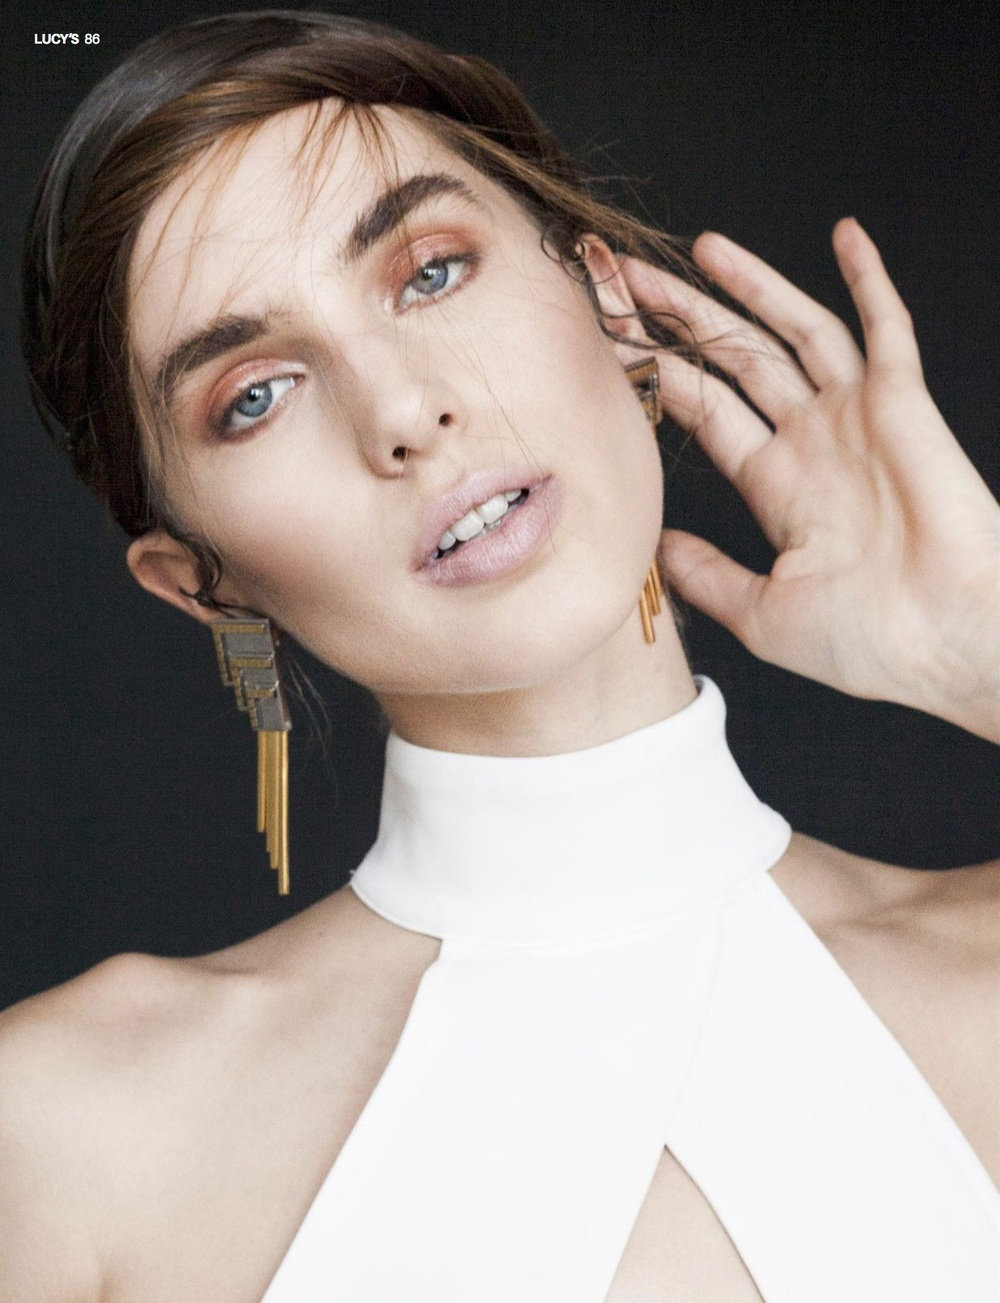 'Whisper' Editorial Lucy's Volume 15 March 2015